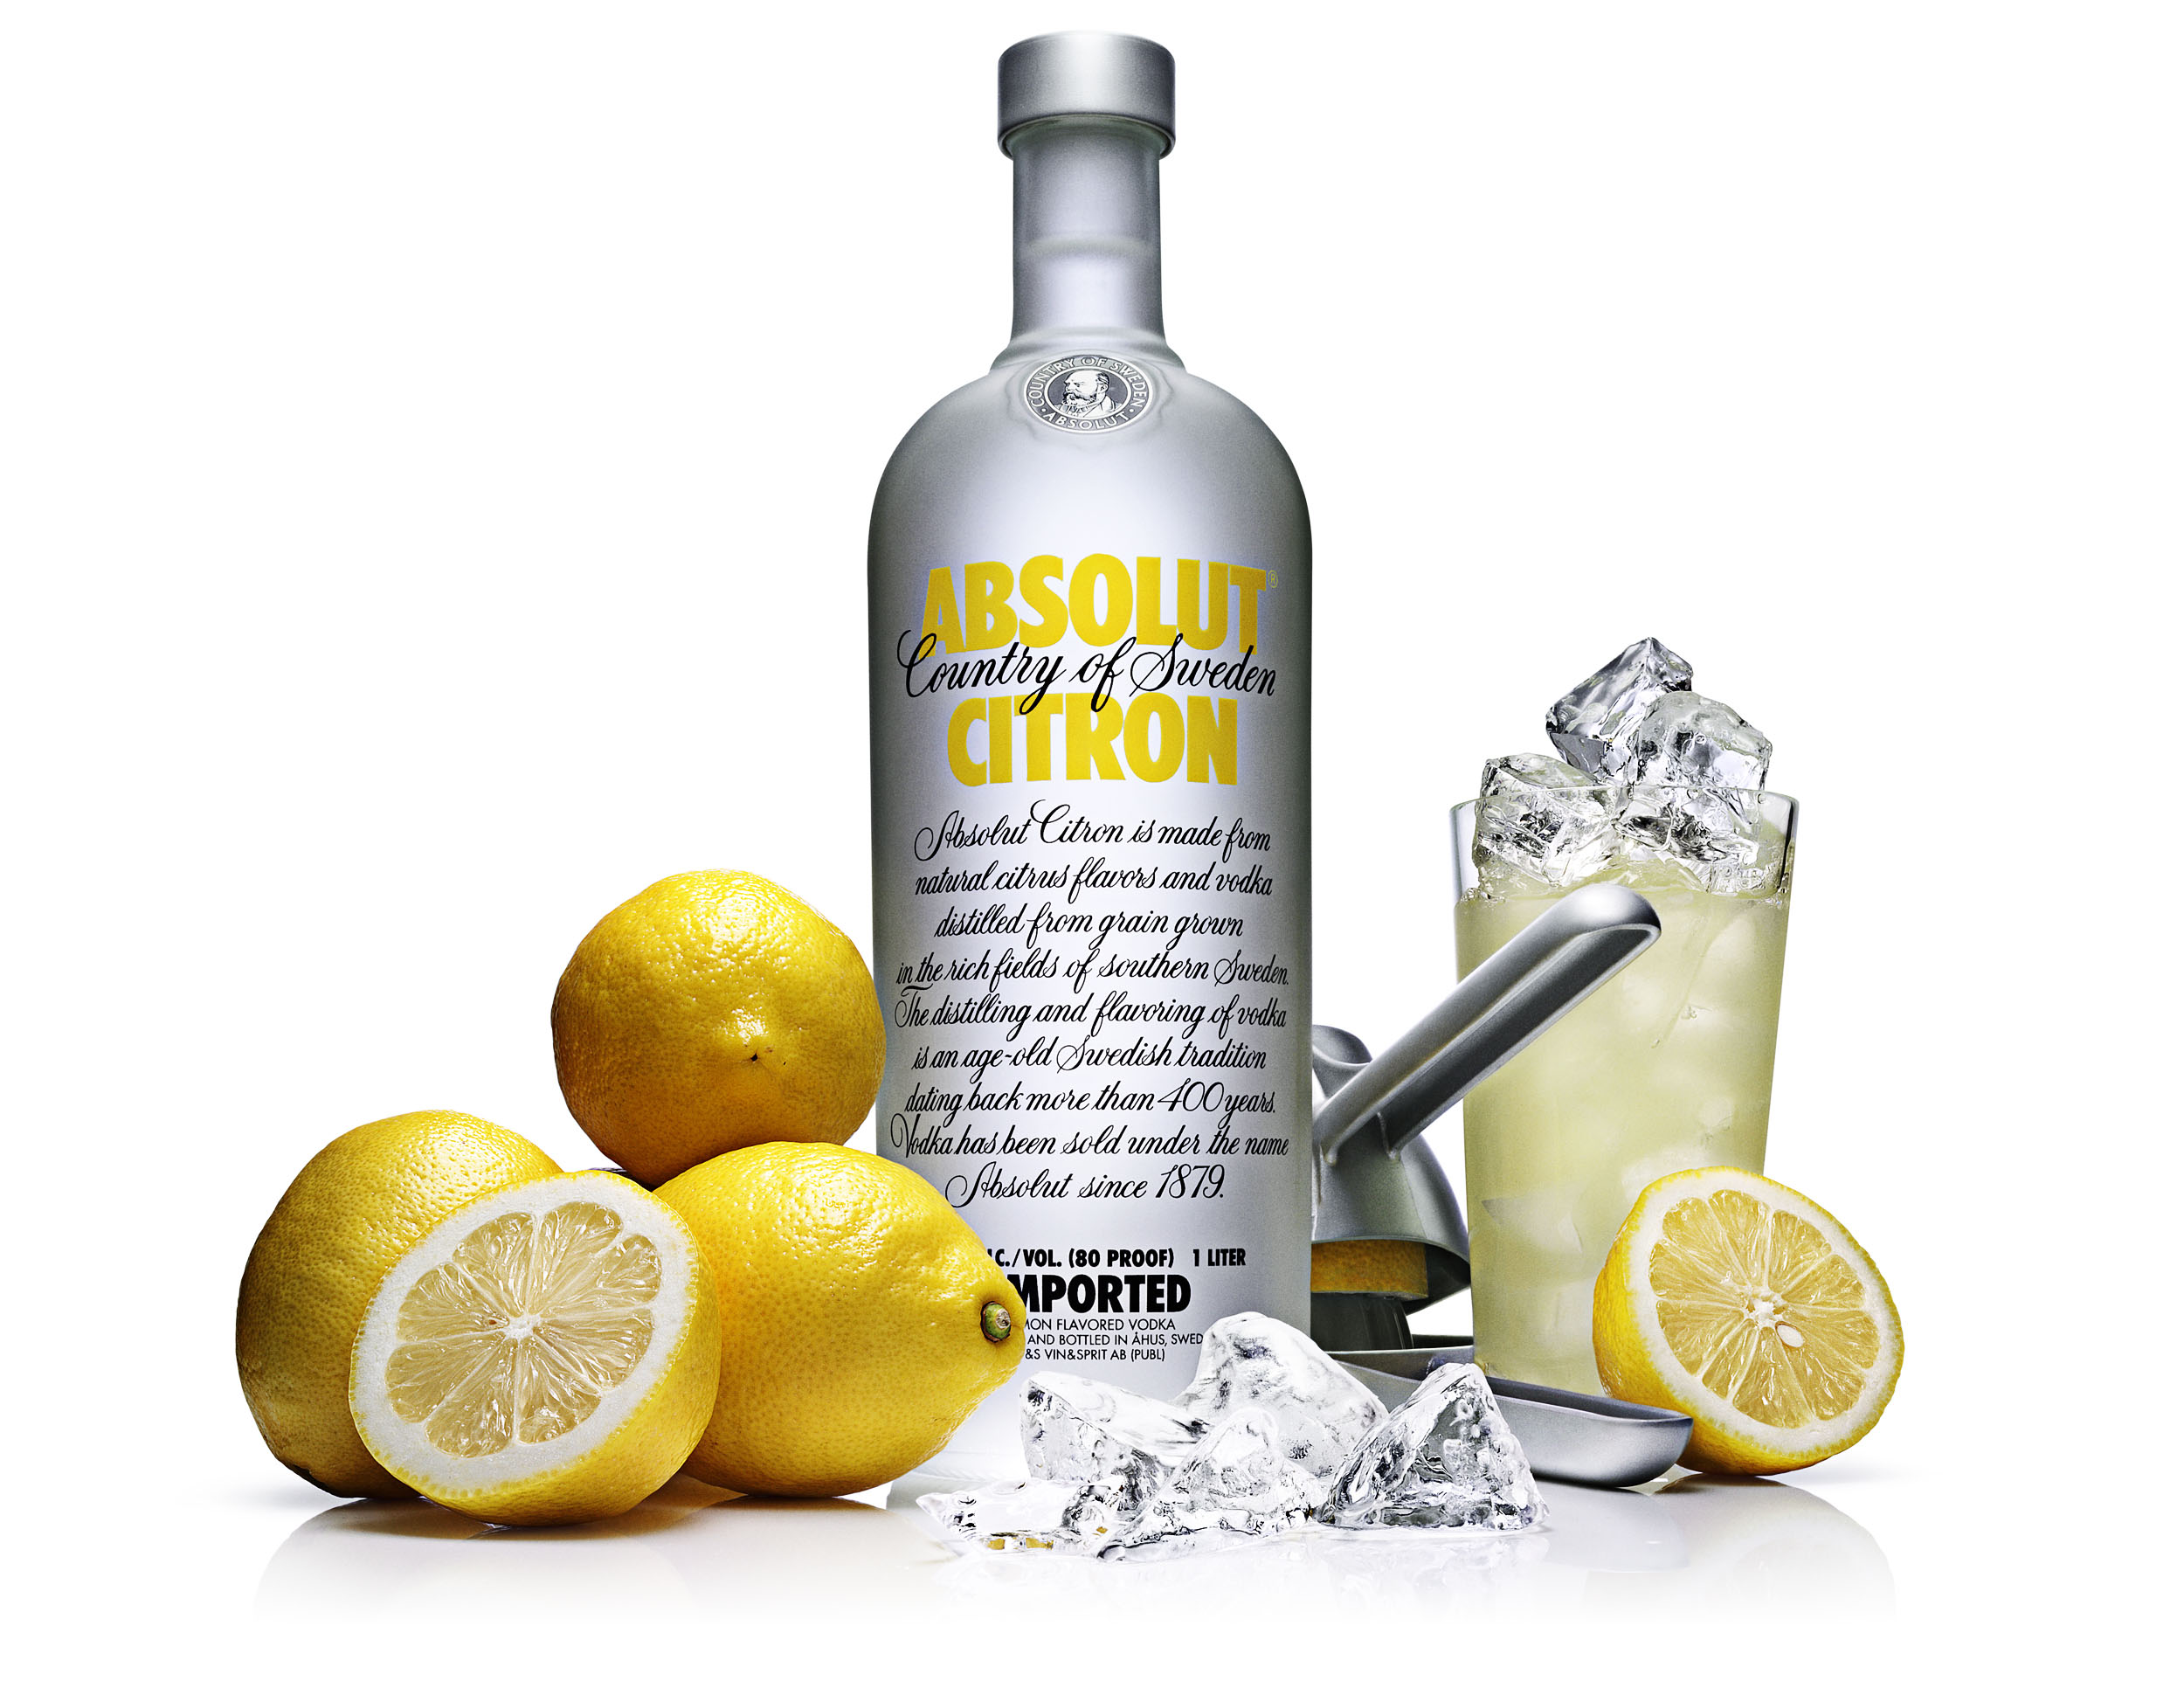 jensmortensen-absolut-vodka-1c84e5ac